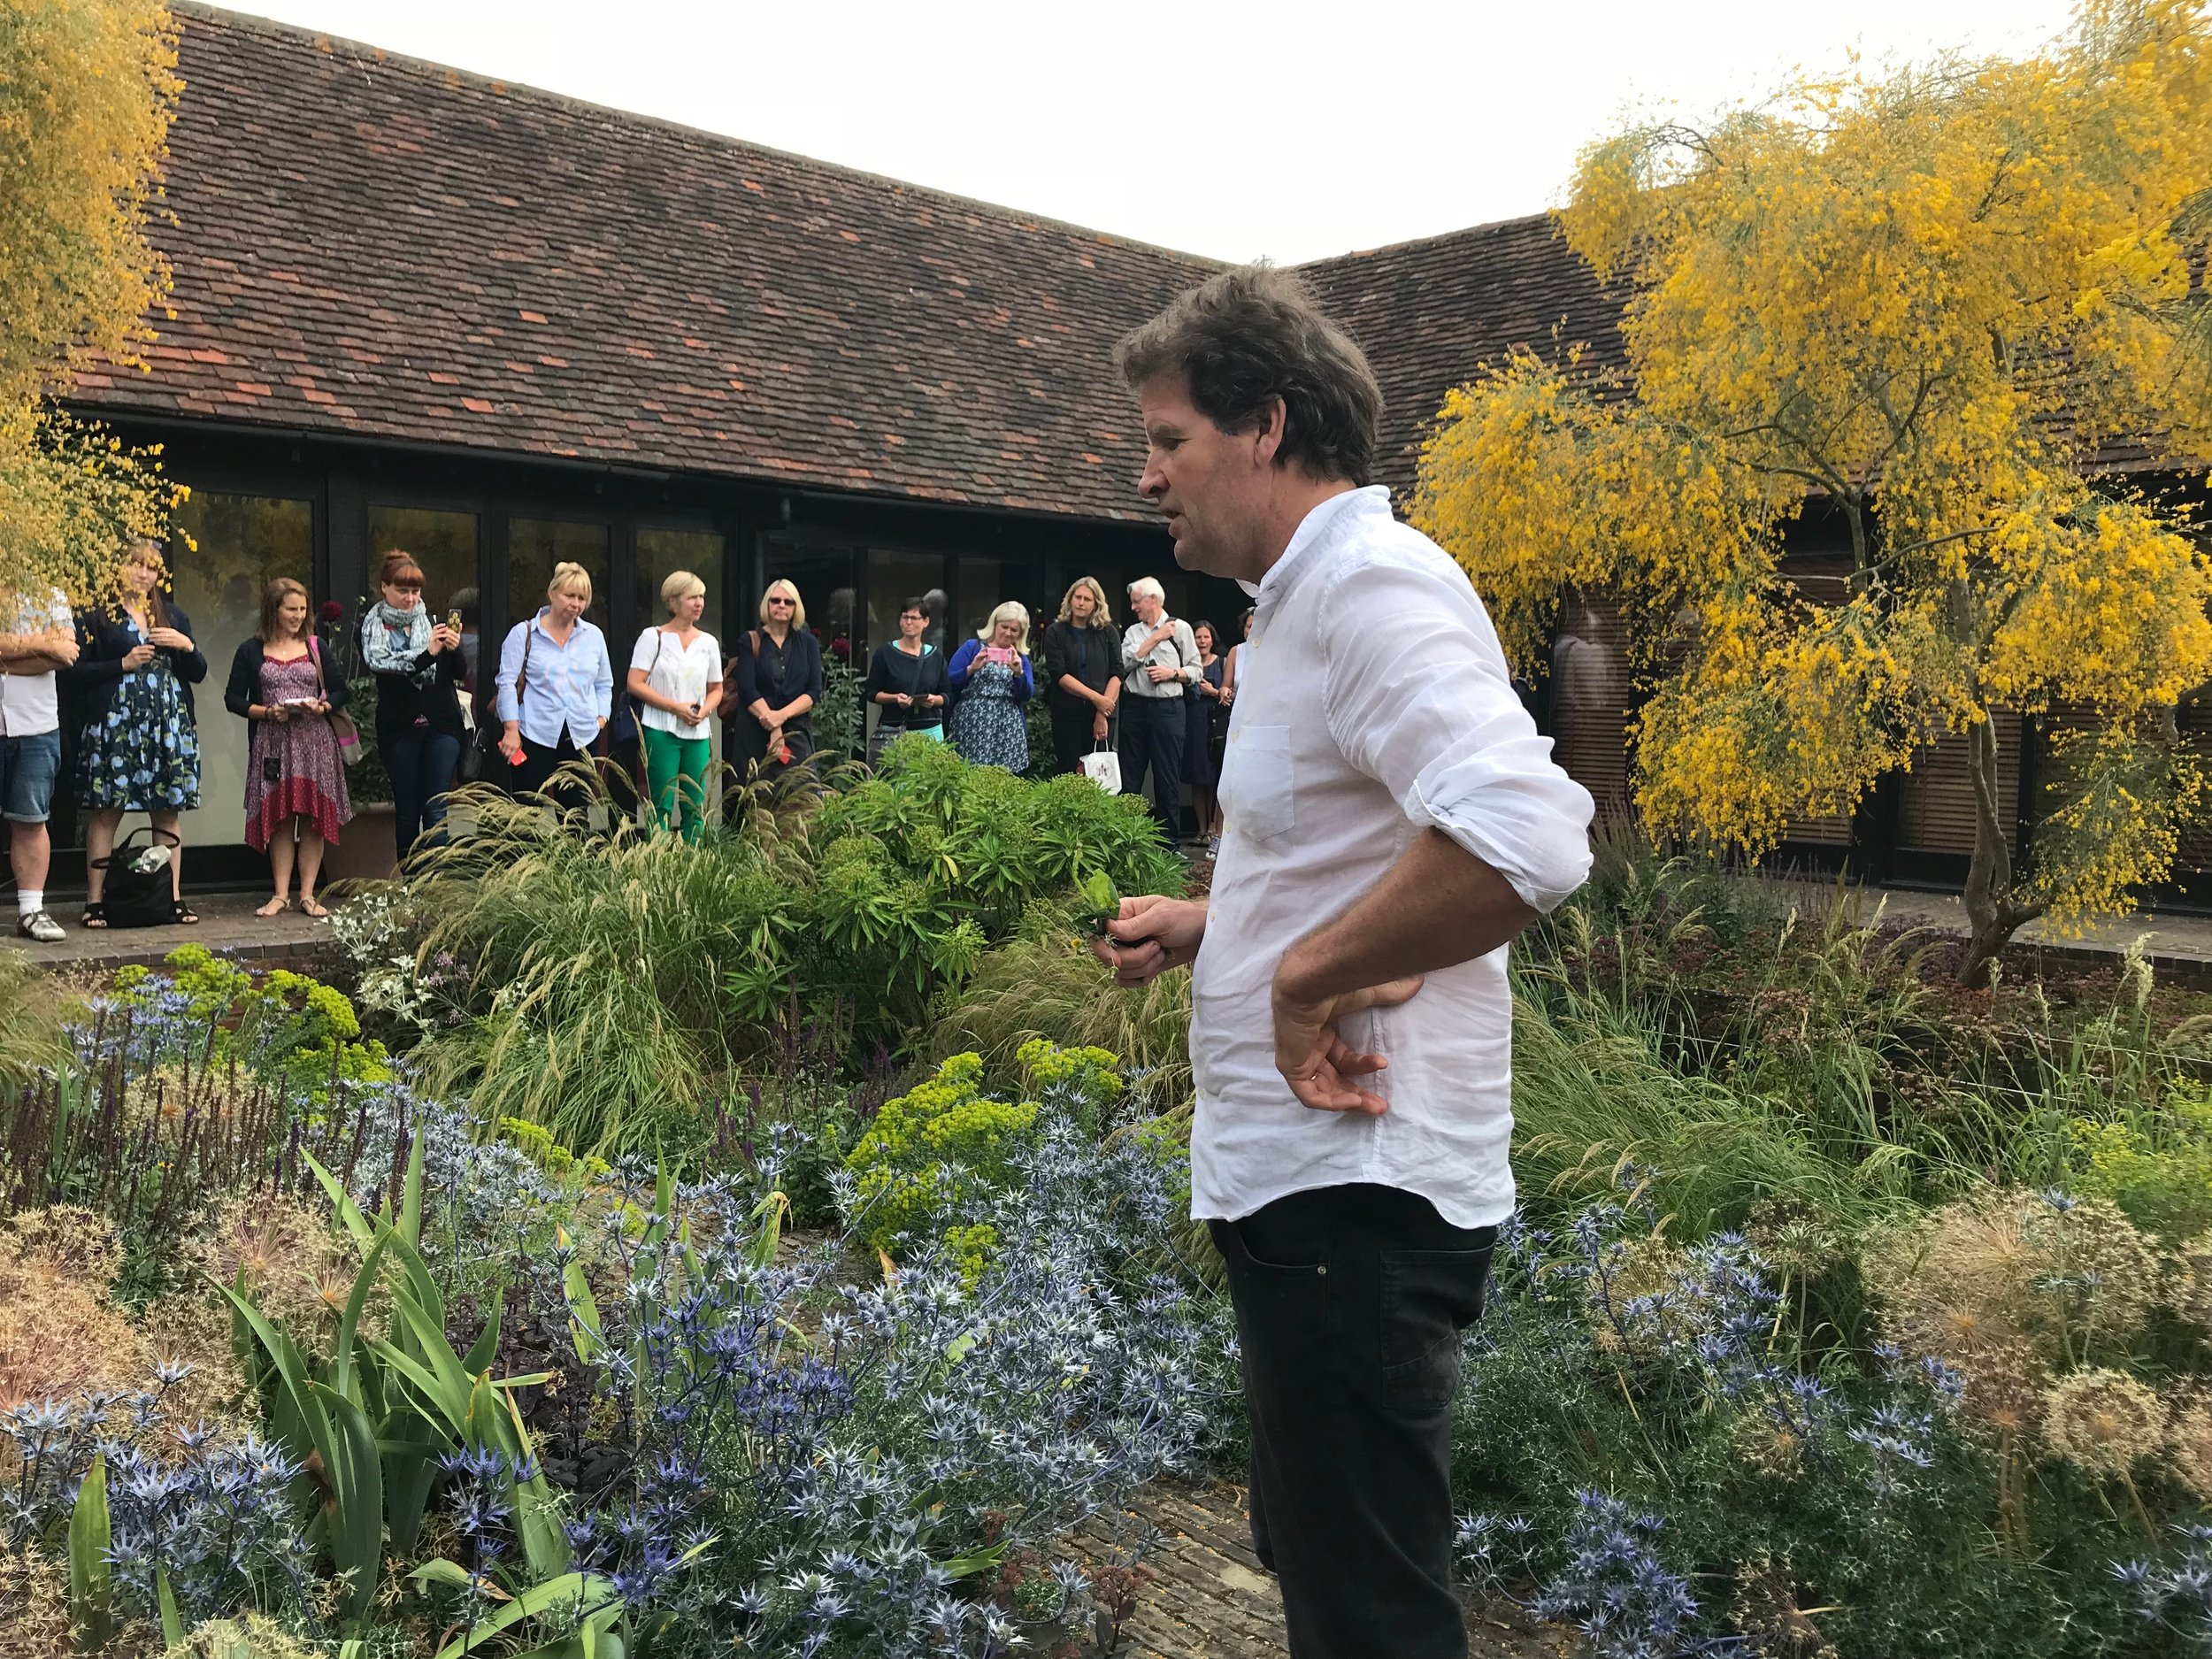 Tom in the courtyard garden – generously sharing his vast knowledge and creative genius, and inspiring fellow garden designers,July 2018  (Gillian Goodson Designs)